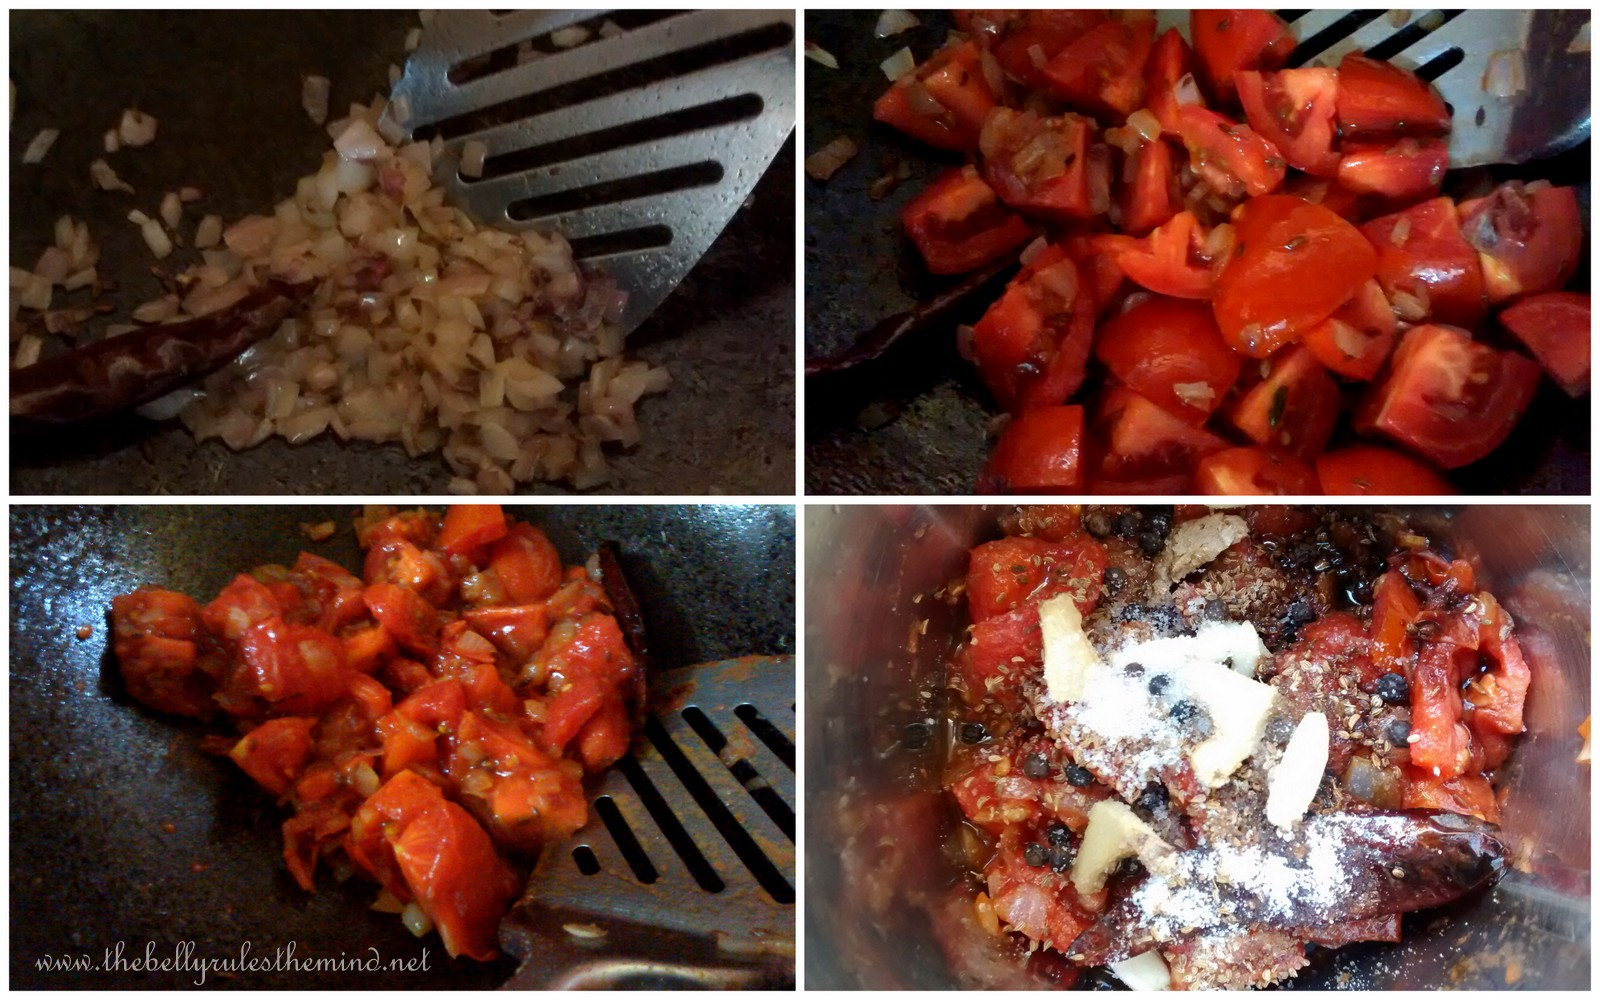 Tomato sauteed with Onions and Red chilli.